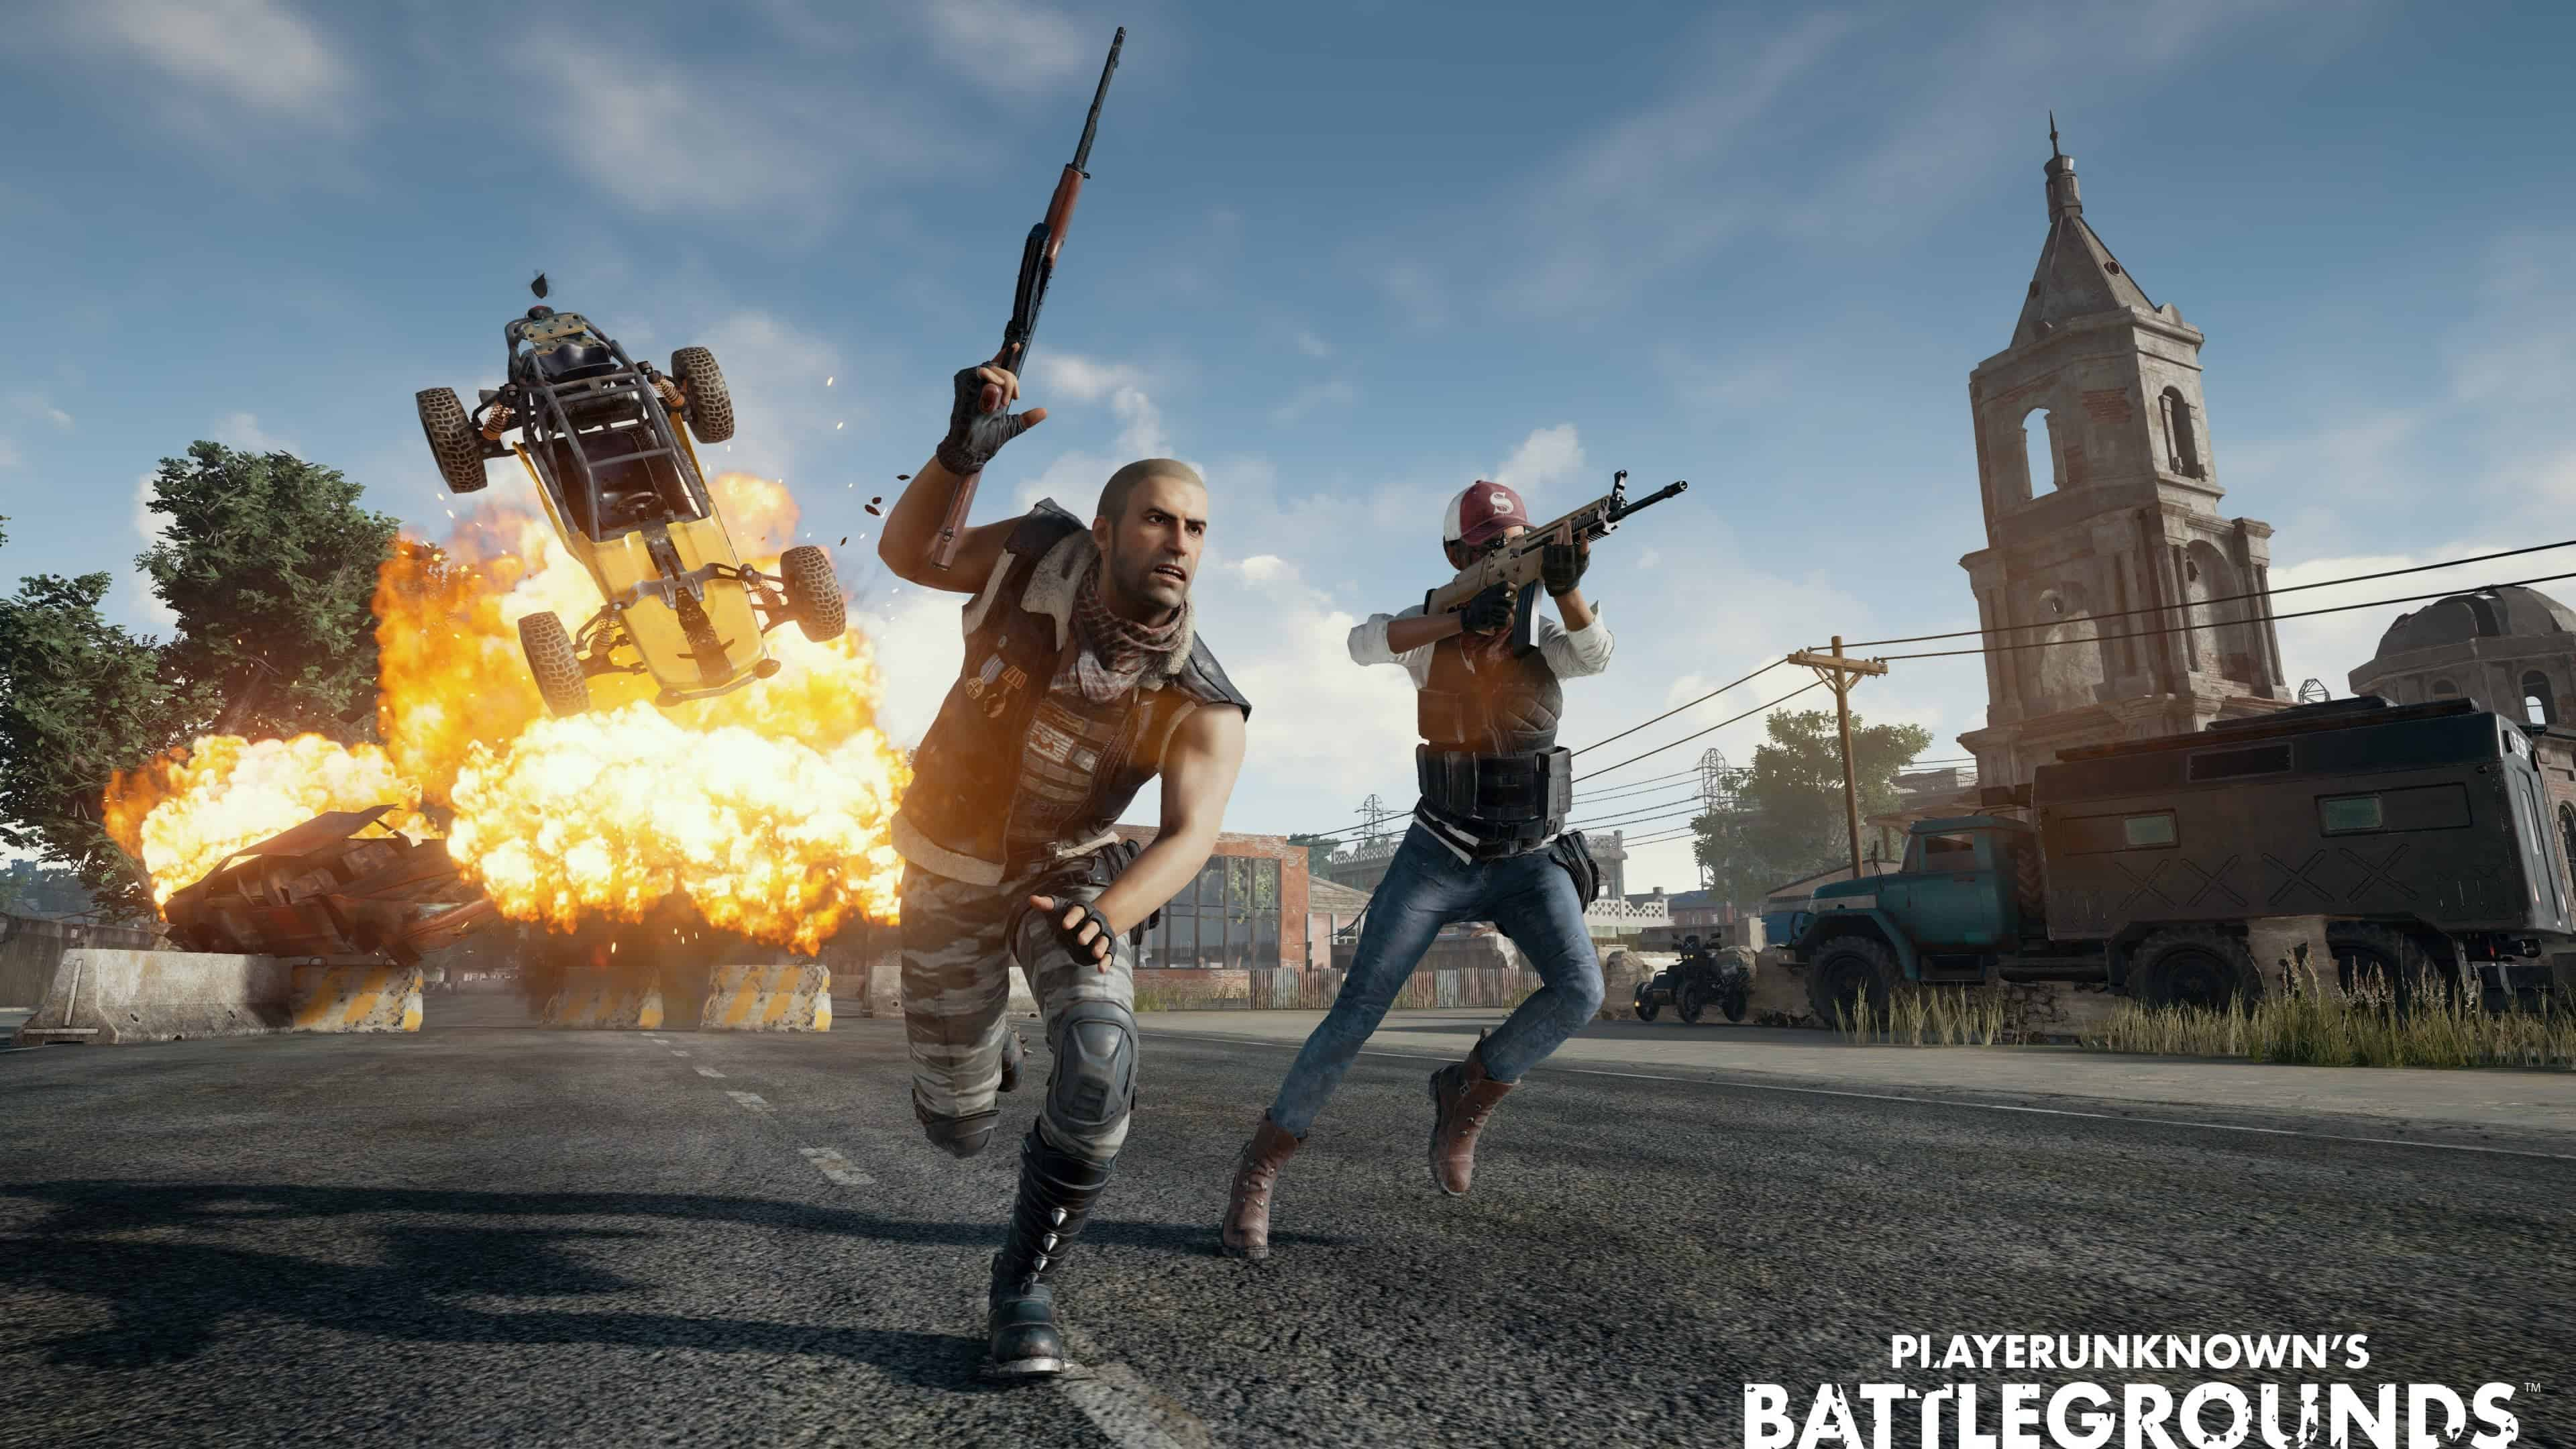 wp3276788 pubg 4k wallpapers - Player Unknown's Battlegrounds (PUBG) 4K - Pubg wallpaper phone, pubg wallpaper iphone, pubg wallpaper 1920x1080 hd, pubg hd wallpapers, pubg 4k wallpapers, Player Unknown's Battlegrounds 4k wallpapers